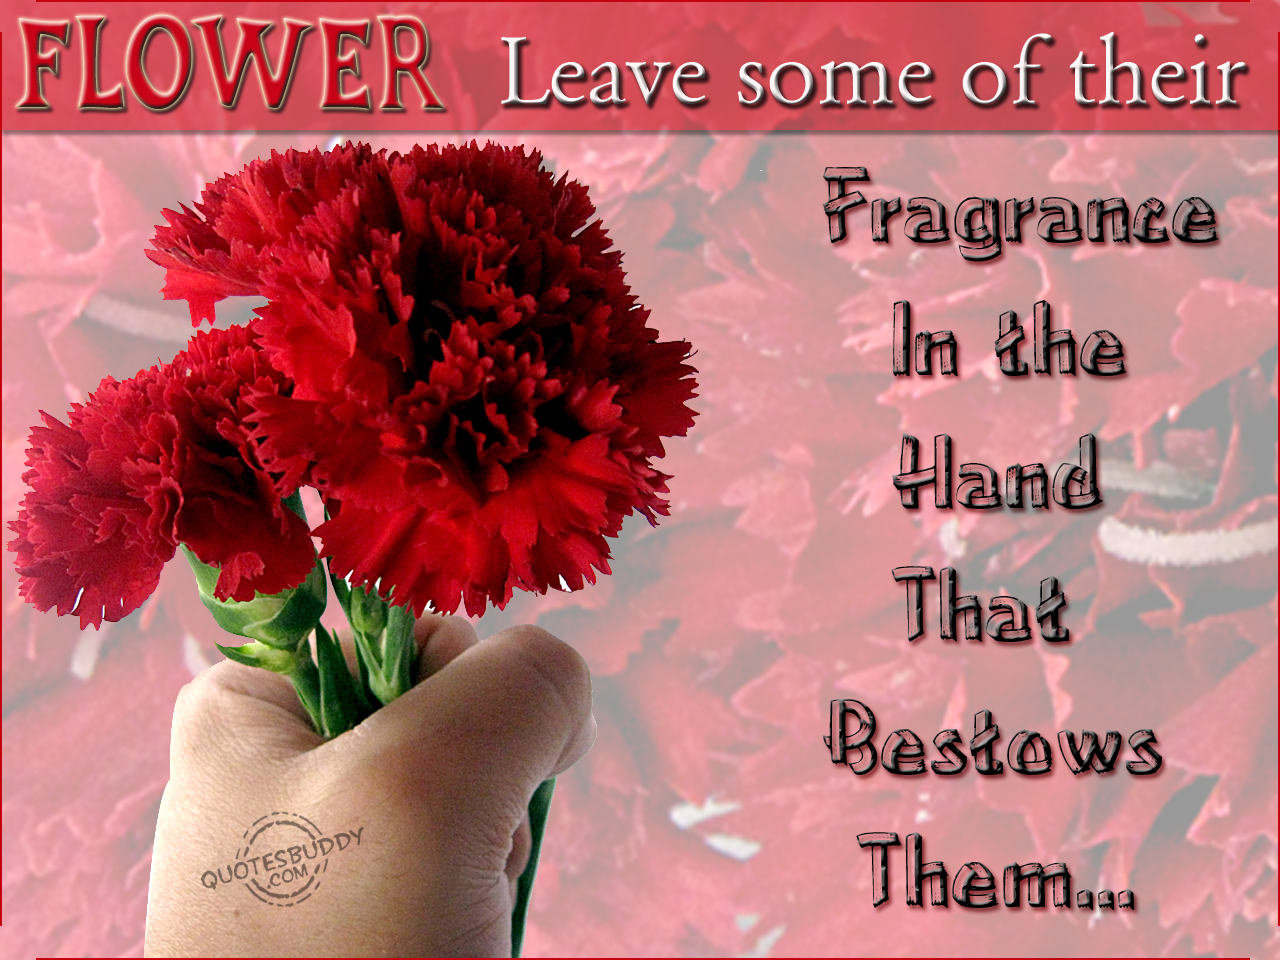 Quotes about beauty of flowers 62 quotes izmirmasajfo Choice Image